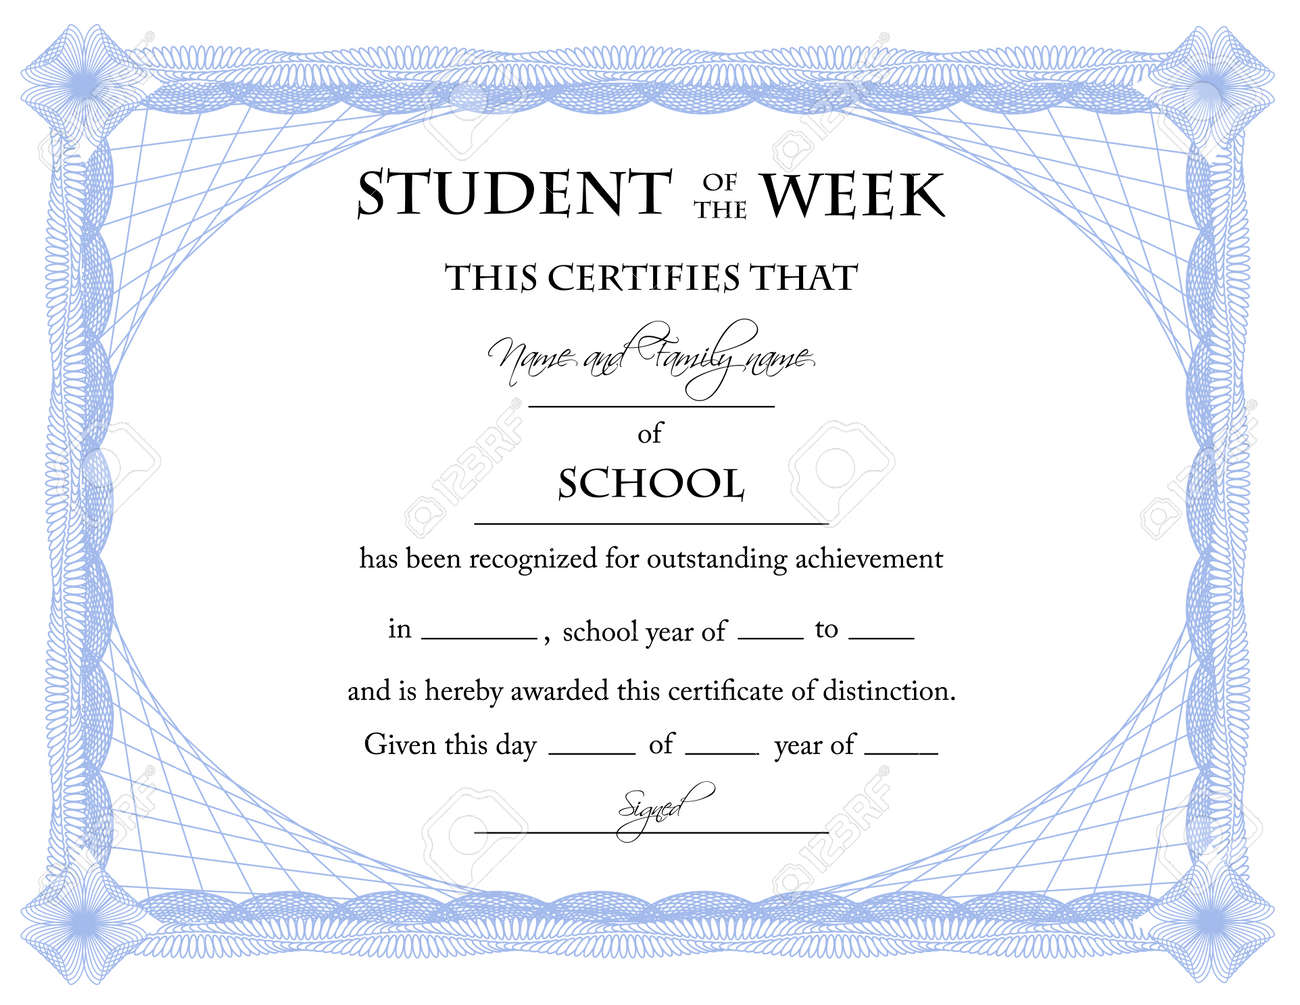 Student of the week certificate royalty free cliparts vectors student of the week certificate stock vector 7475095 xflitez Choice Image